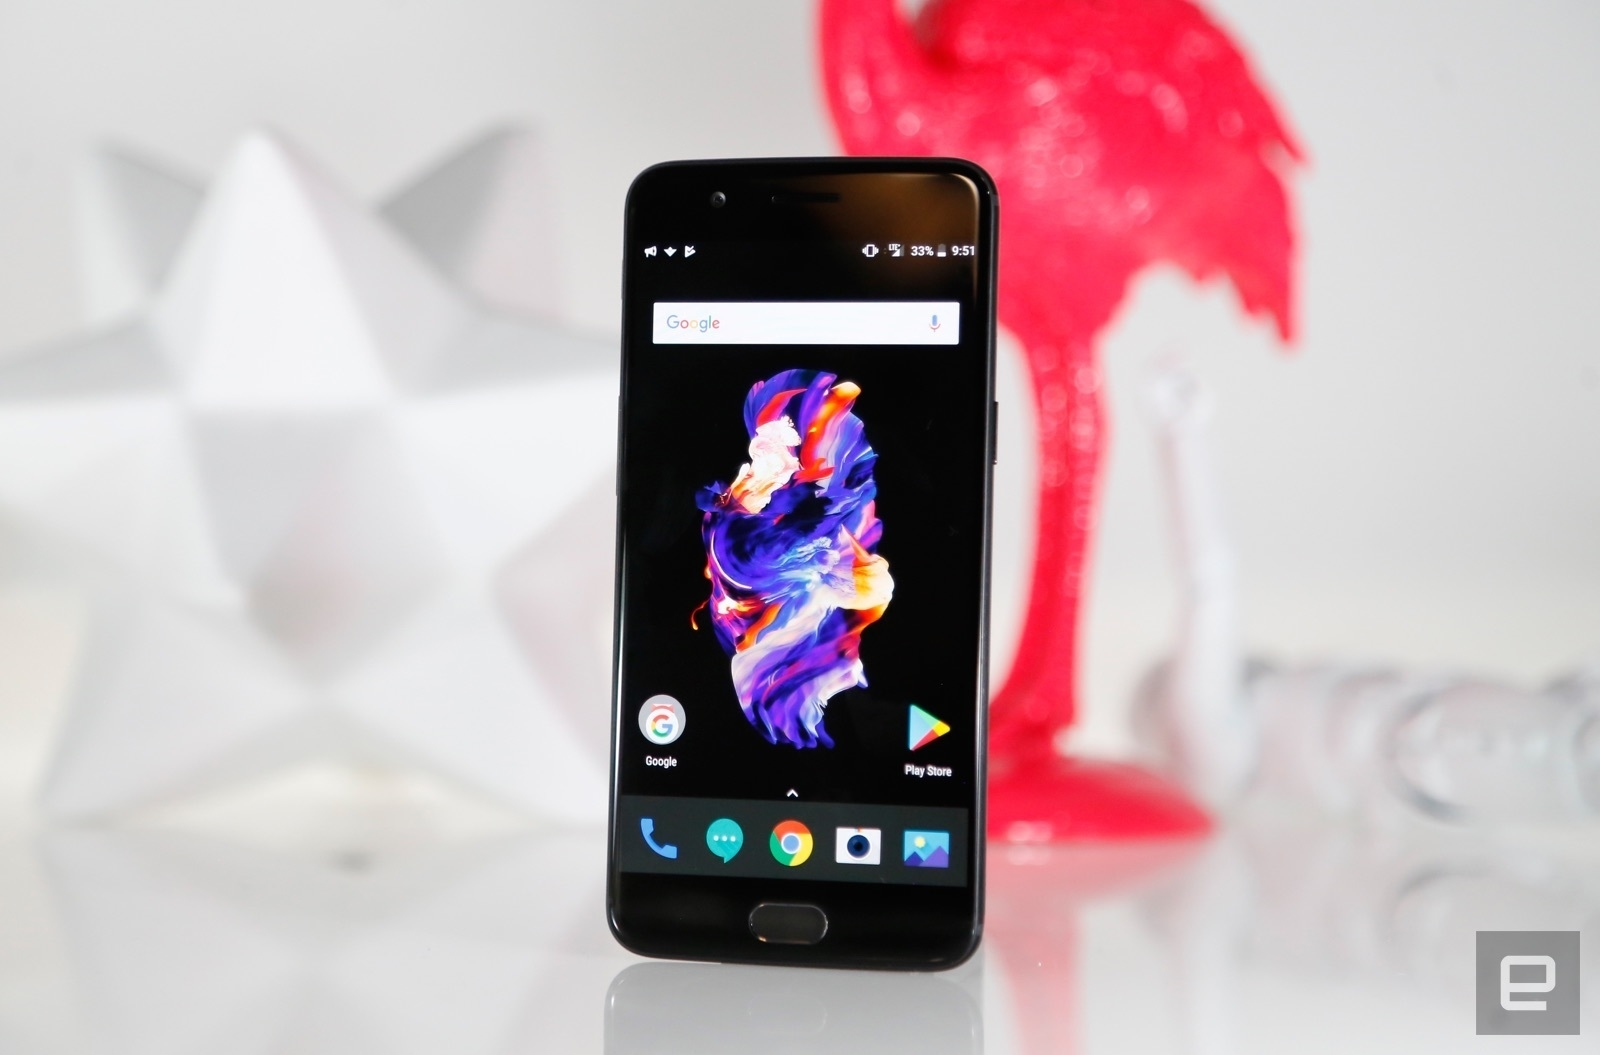 OnePlus limits the data it collects from your phone | DeviceDaily.com